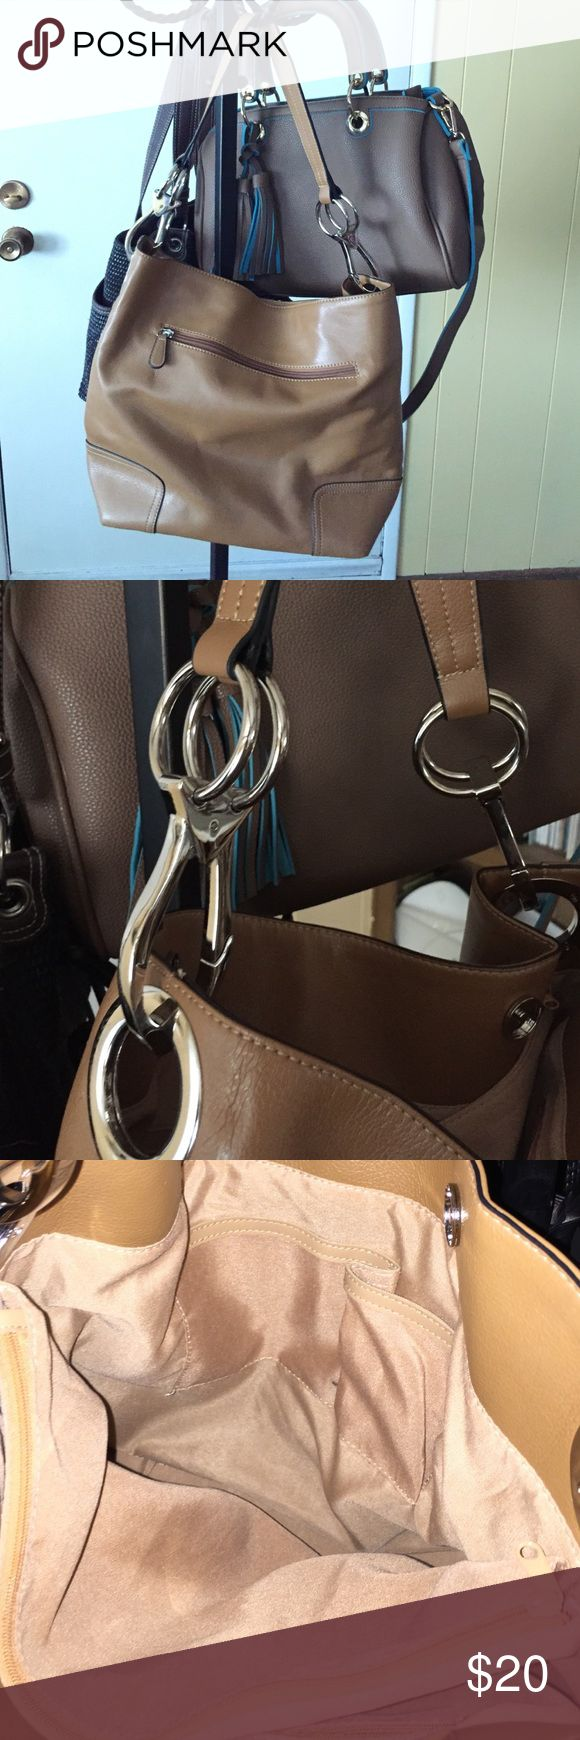 Hollywood steals home and family - Hollywood Steals Home And Family Tan Leather Handbag Purchased On Home Family Show S Hollywood